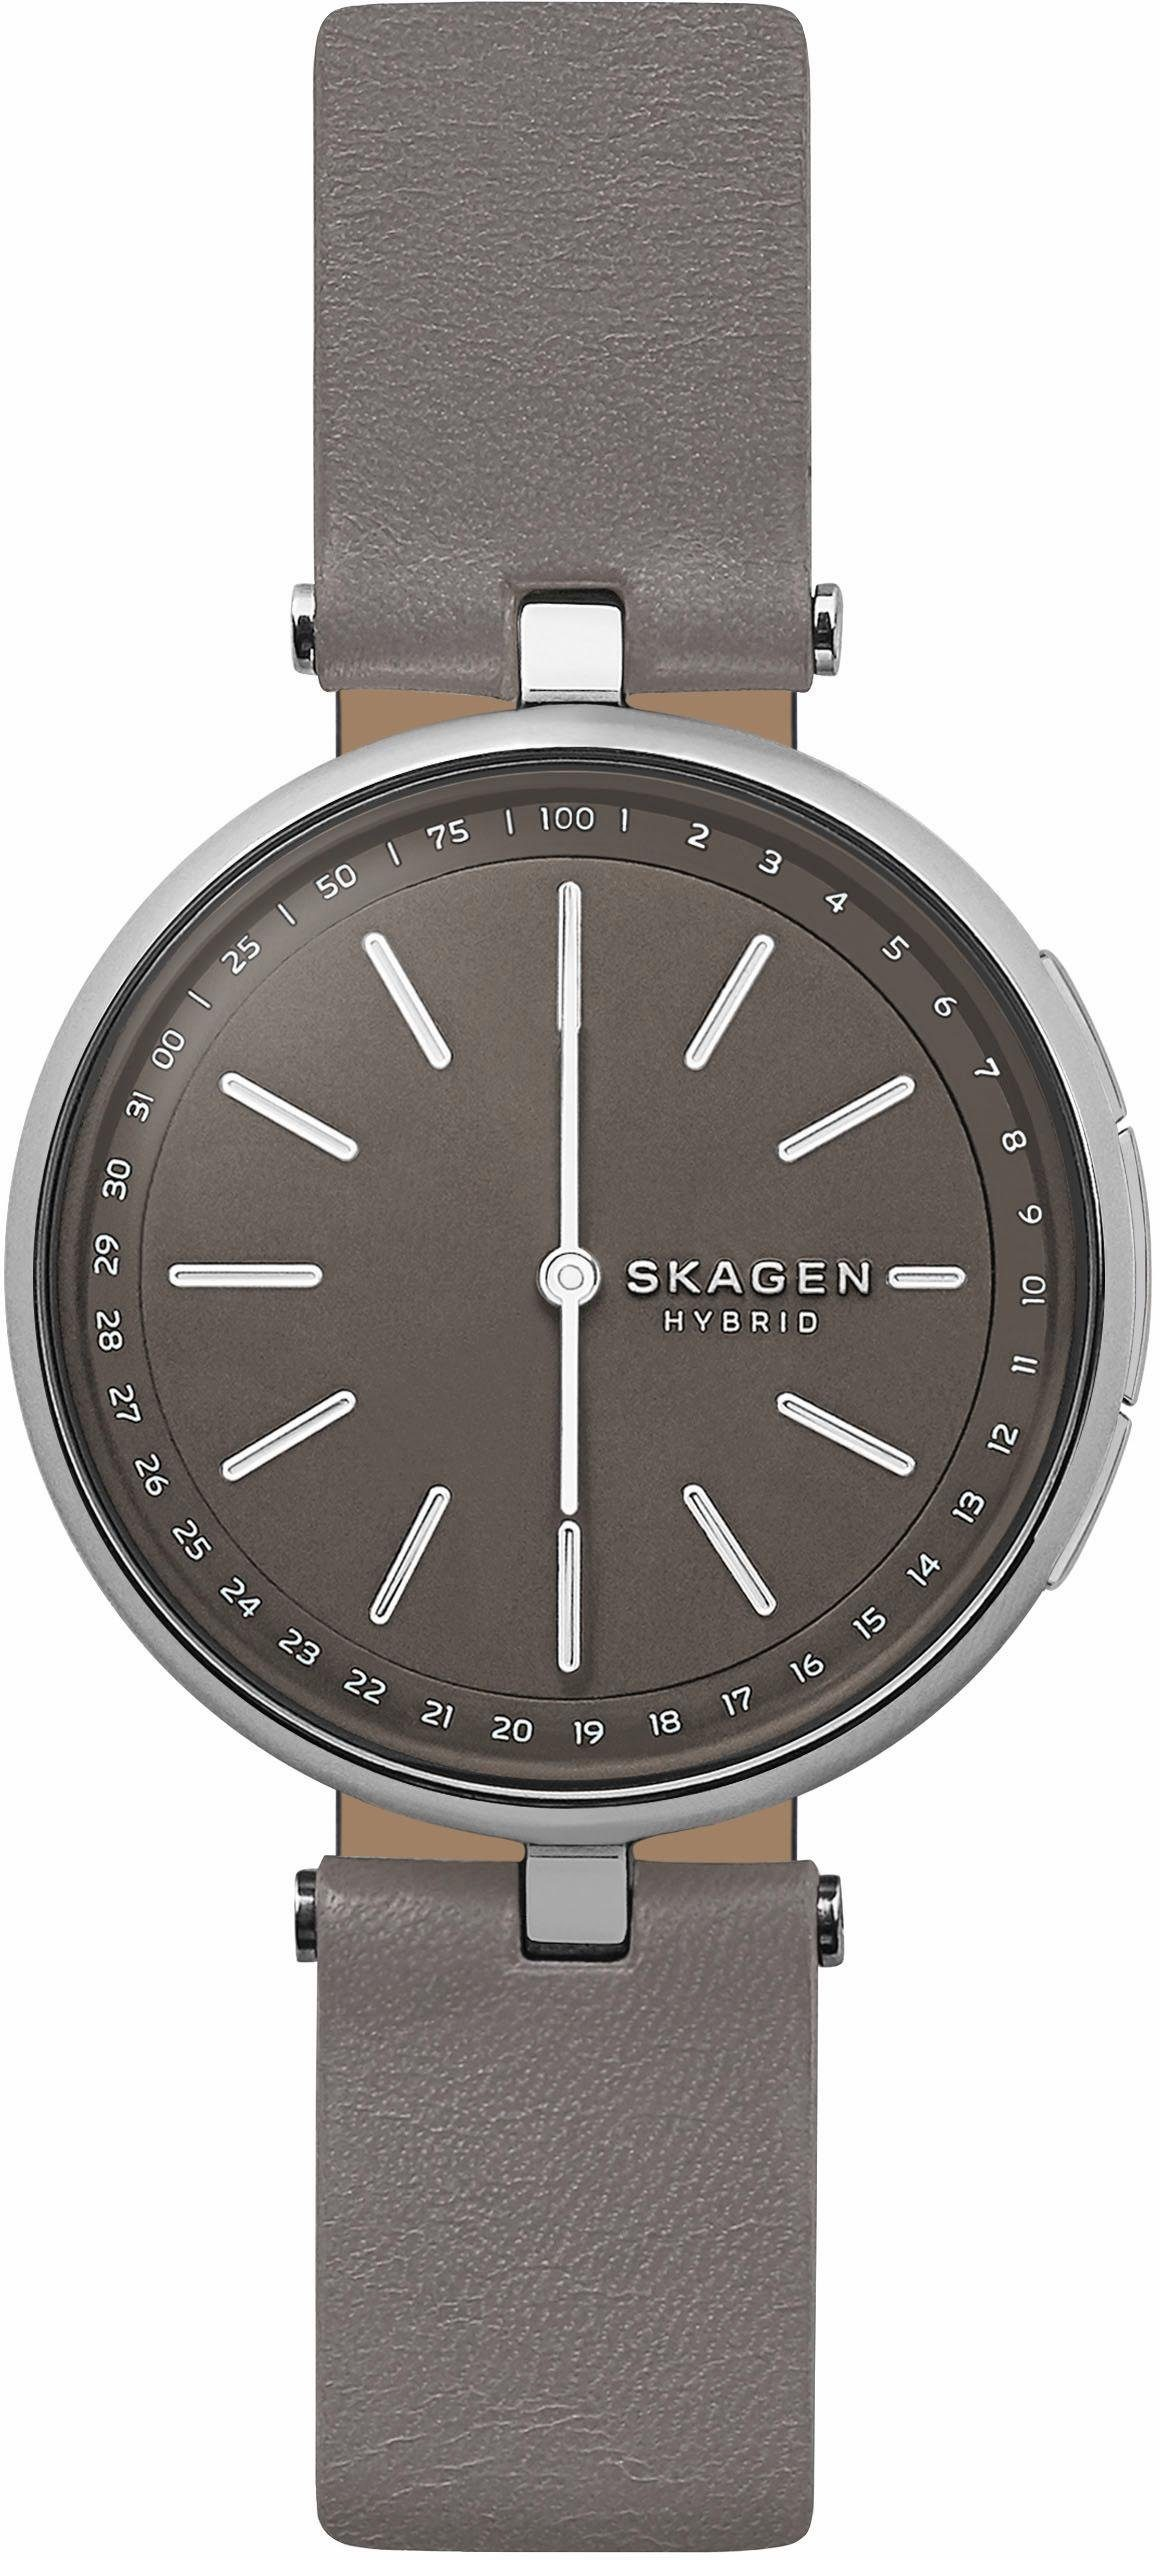 SKAGEN CONNECTED SIGNATUR, SKT1401 Smartwatch (Android Wear)